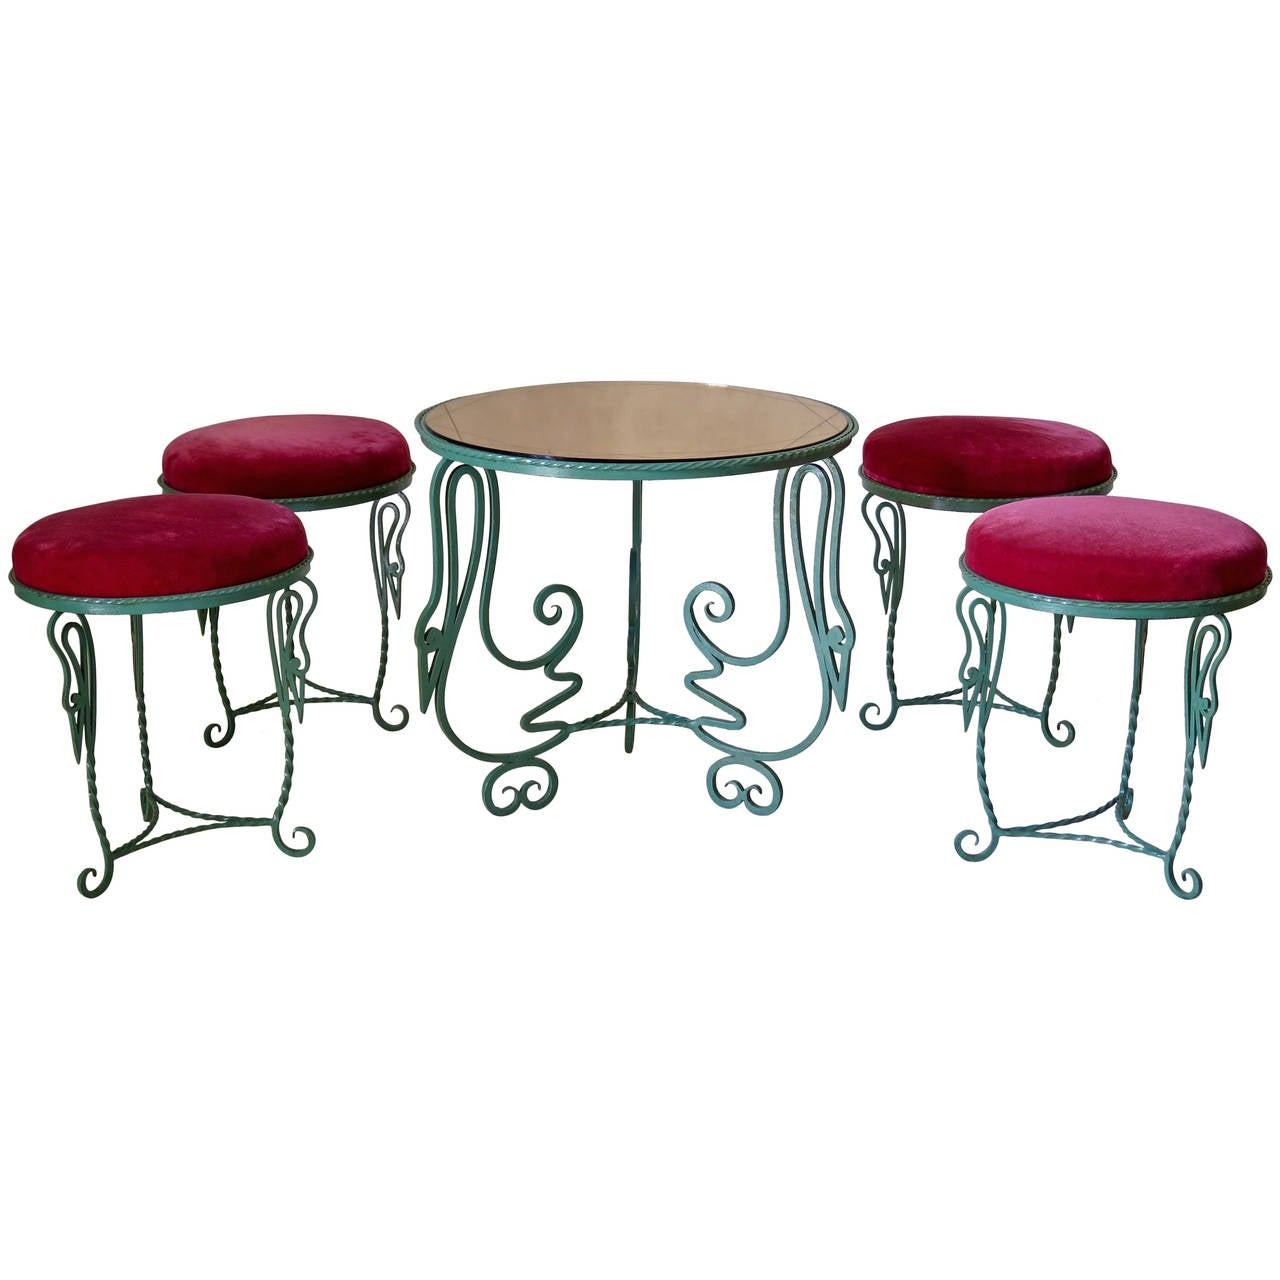 Stork Motif Wrought Iron Coffee Table And 4 Stools France 1940s At 1stdibs